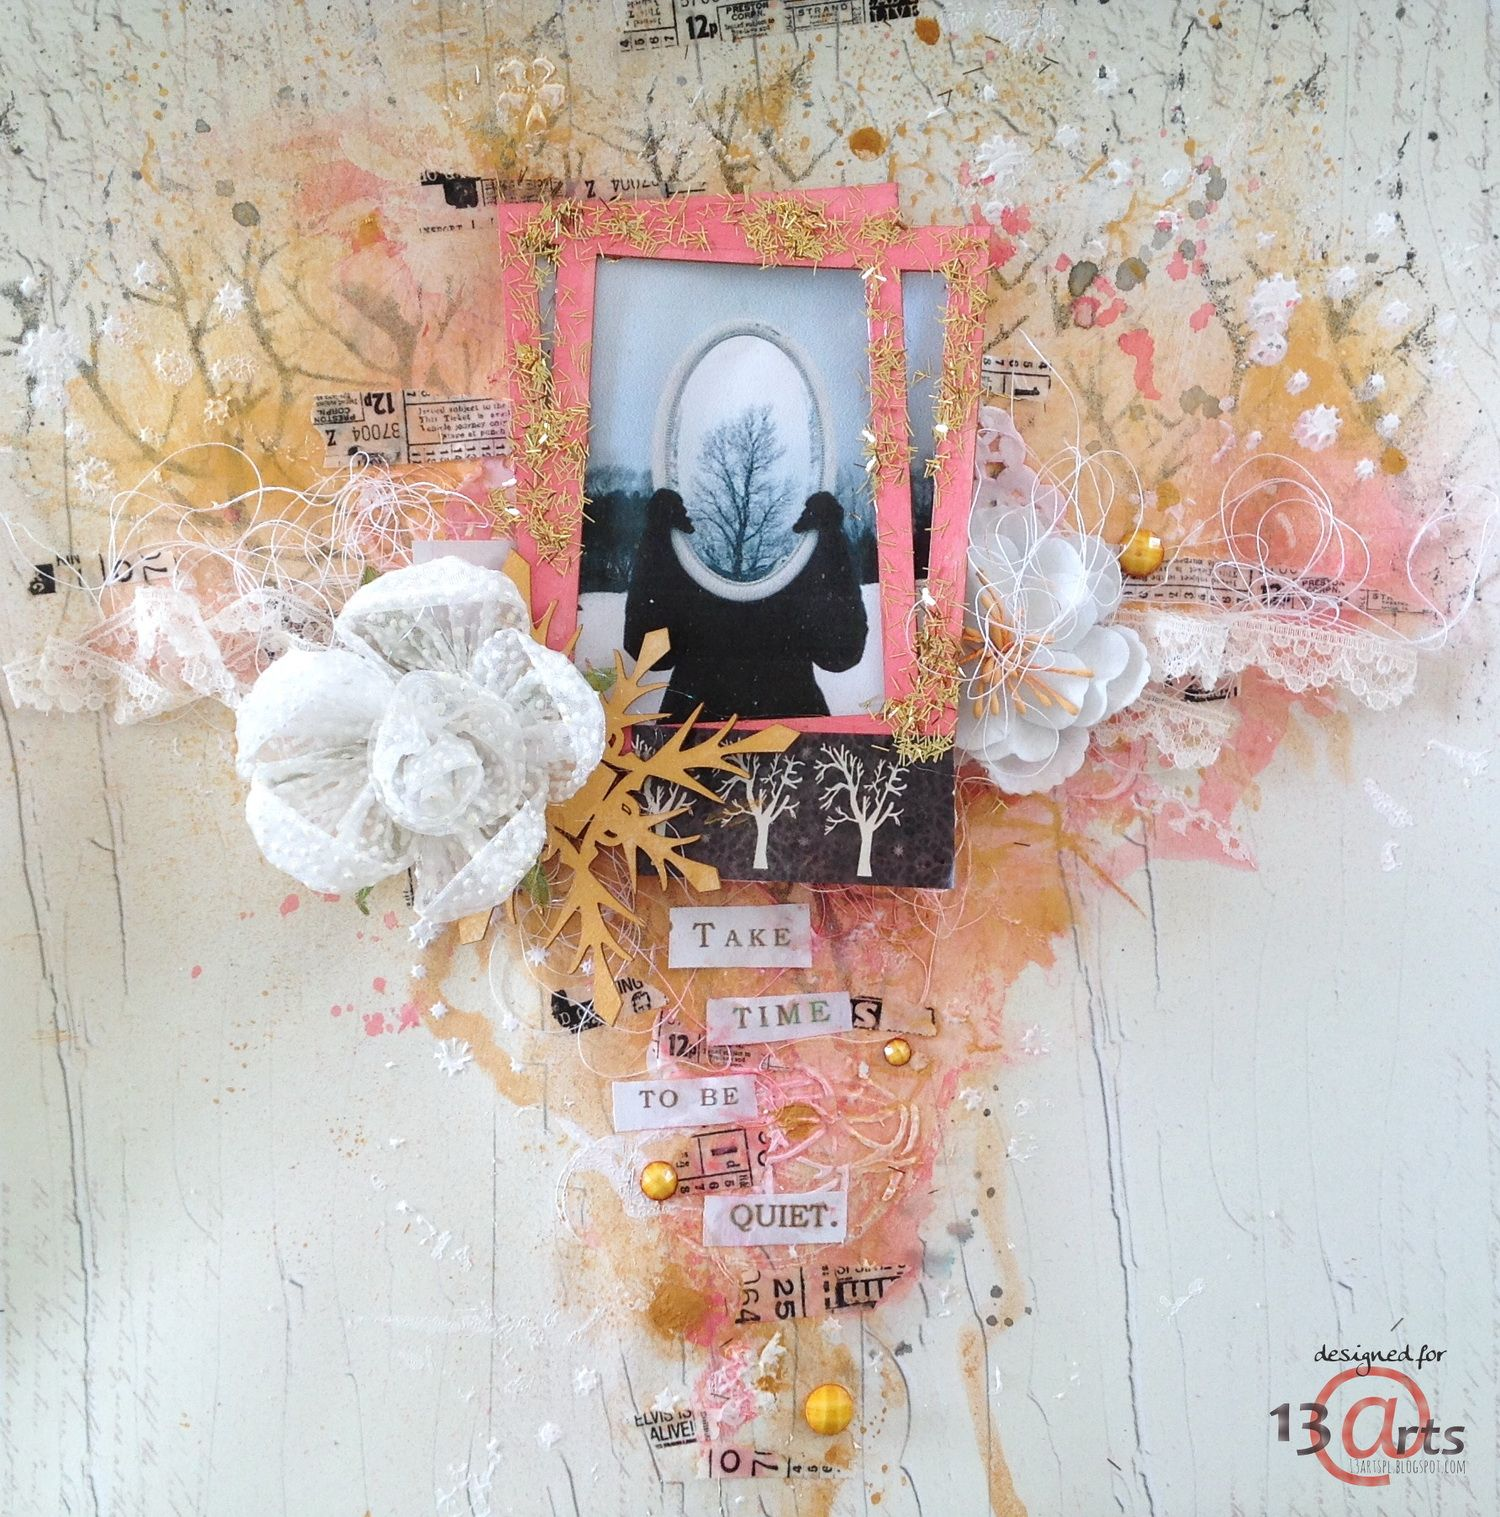 13arts: Take Time- layout by our GD Alexandra Polyzou